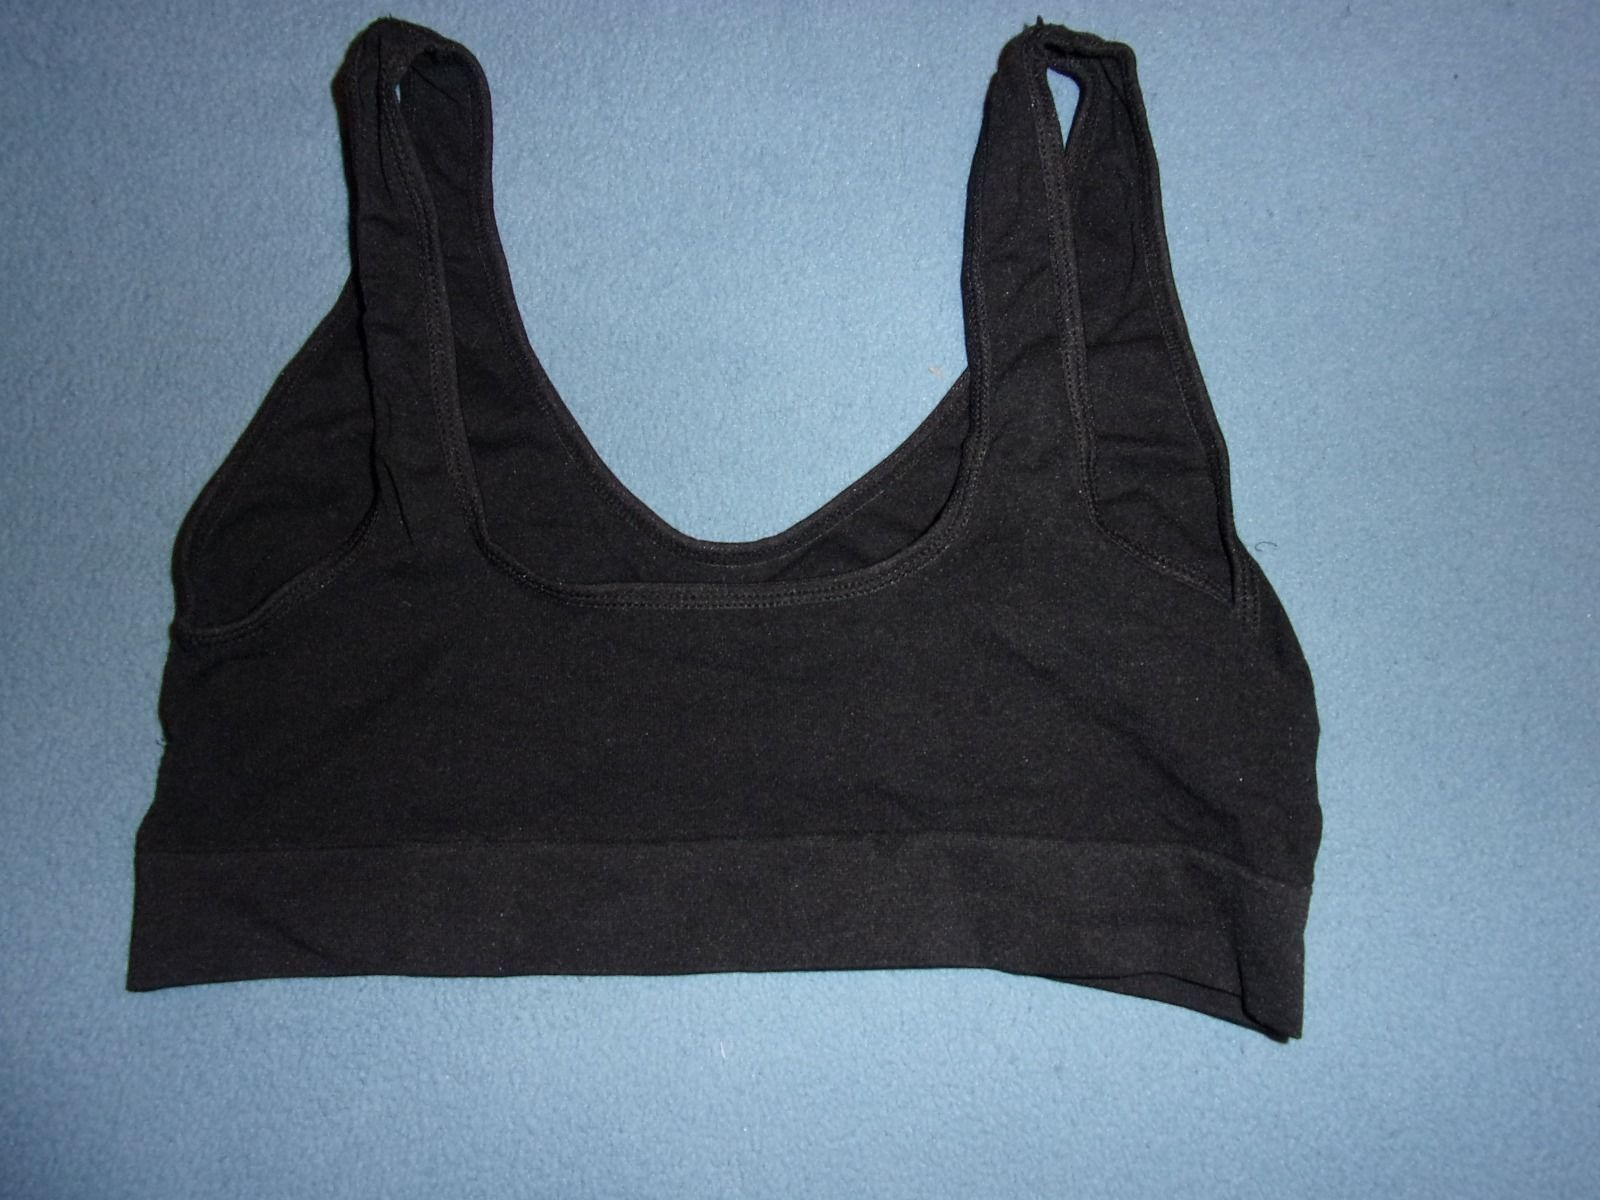 26cad52d02 Unbranded Leisure Bra One Size Fits All GUC Soft Cup Wire Free Full Coverage